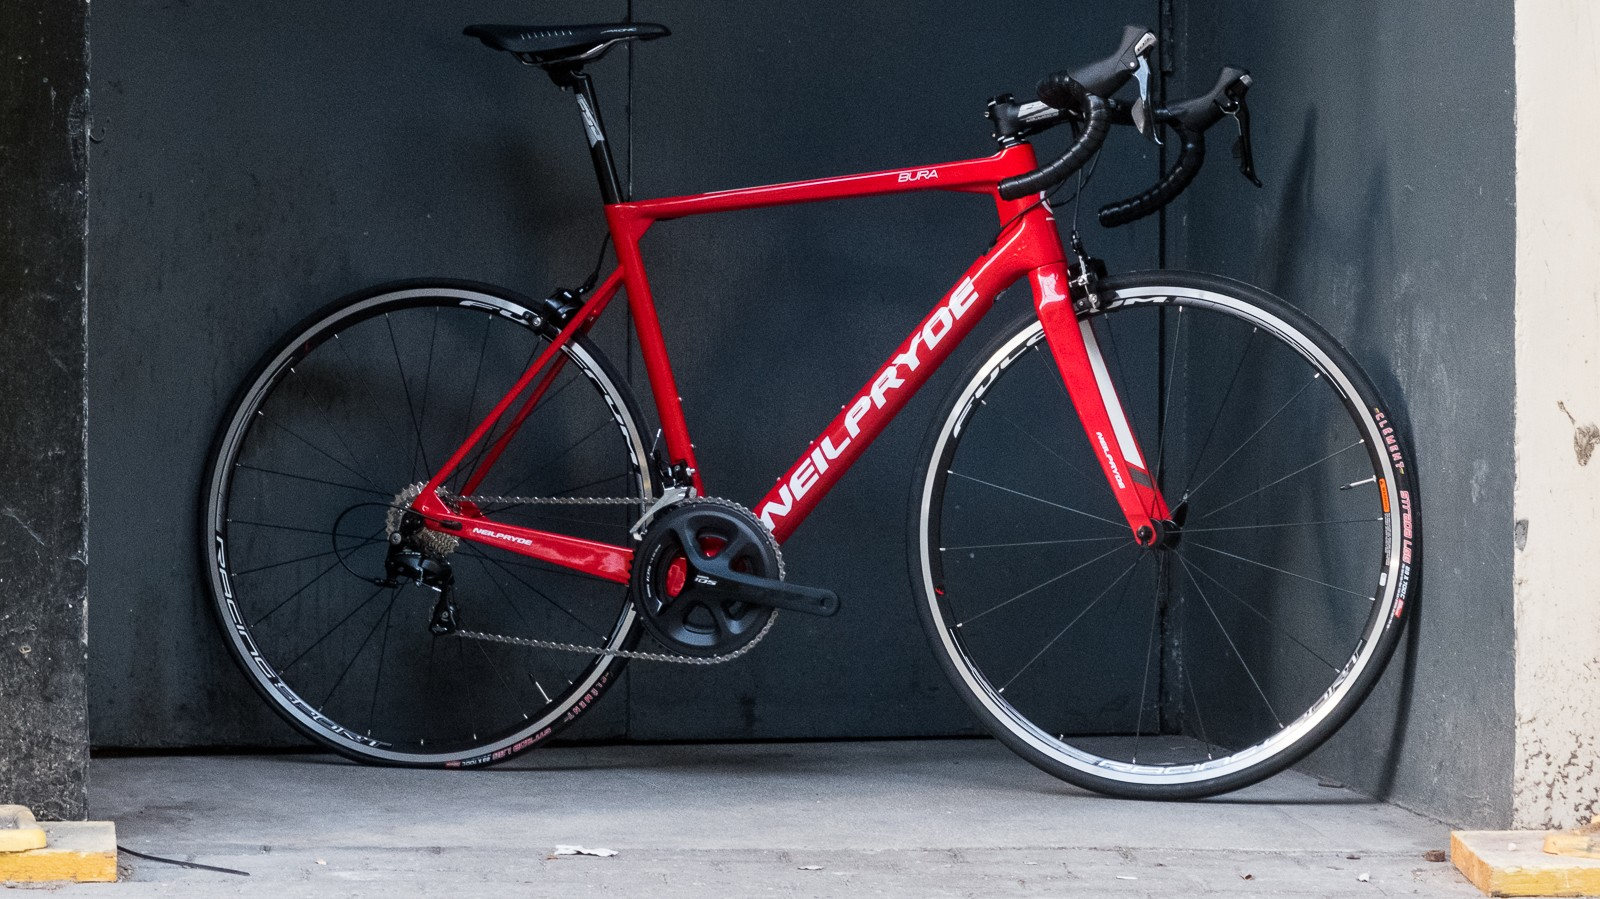 The NeilPryde Bura is the brands out-and-out race bike